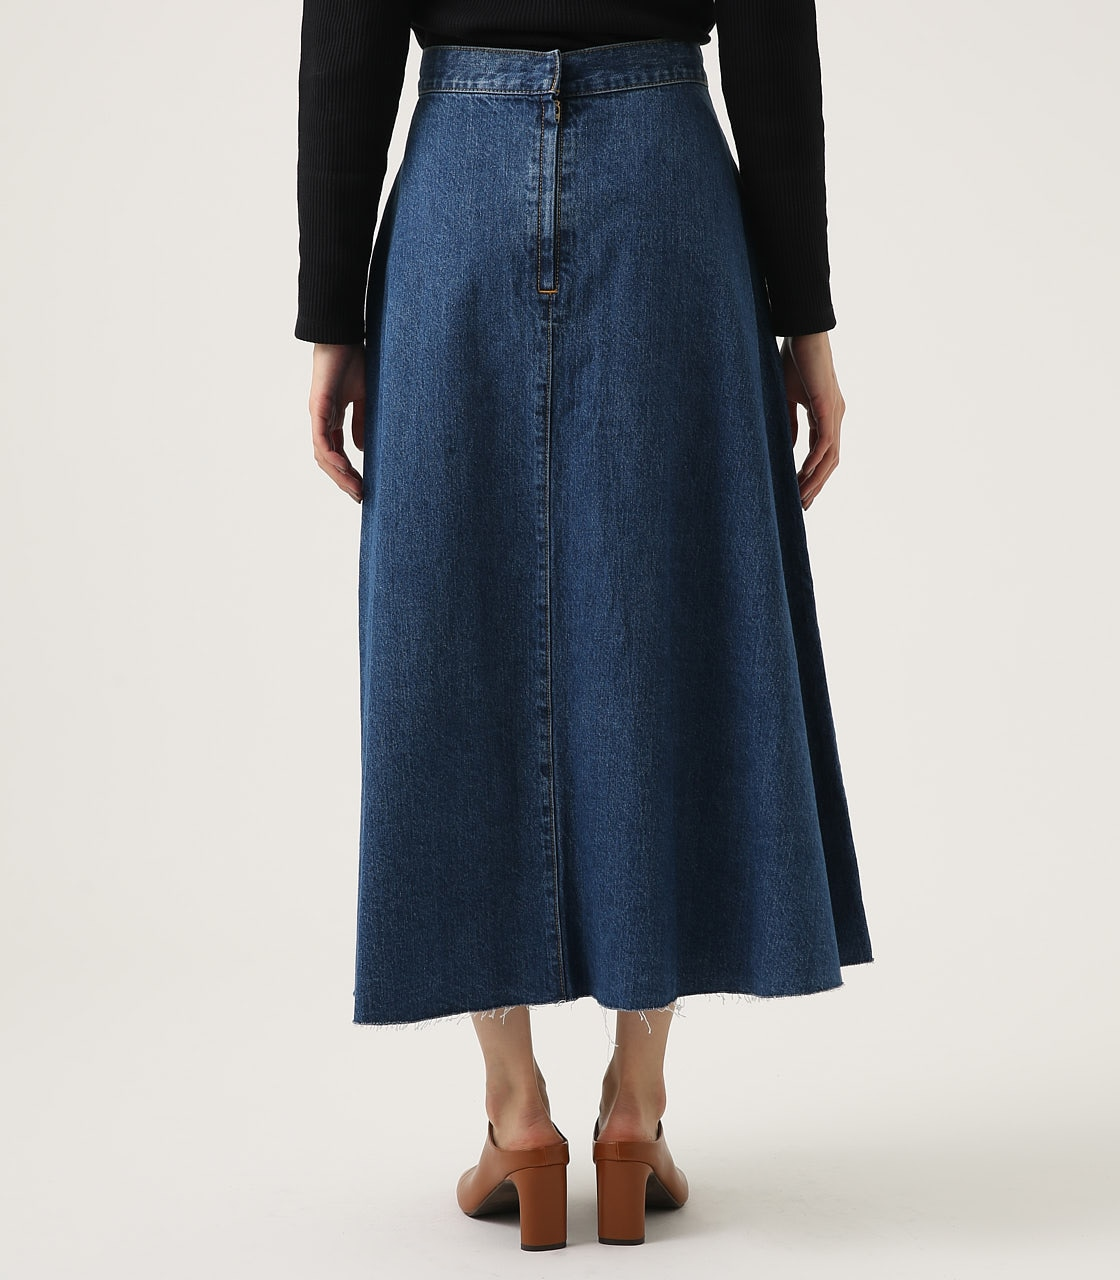 CUT OFF FLARE DENIM LONG SKIRT 詳細画像 BLU 7